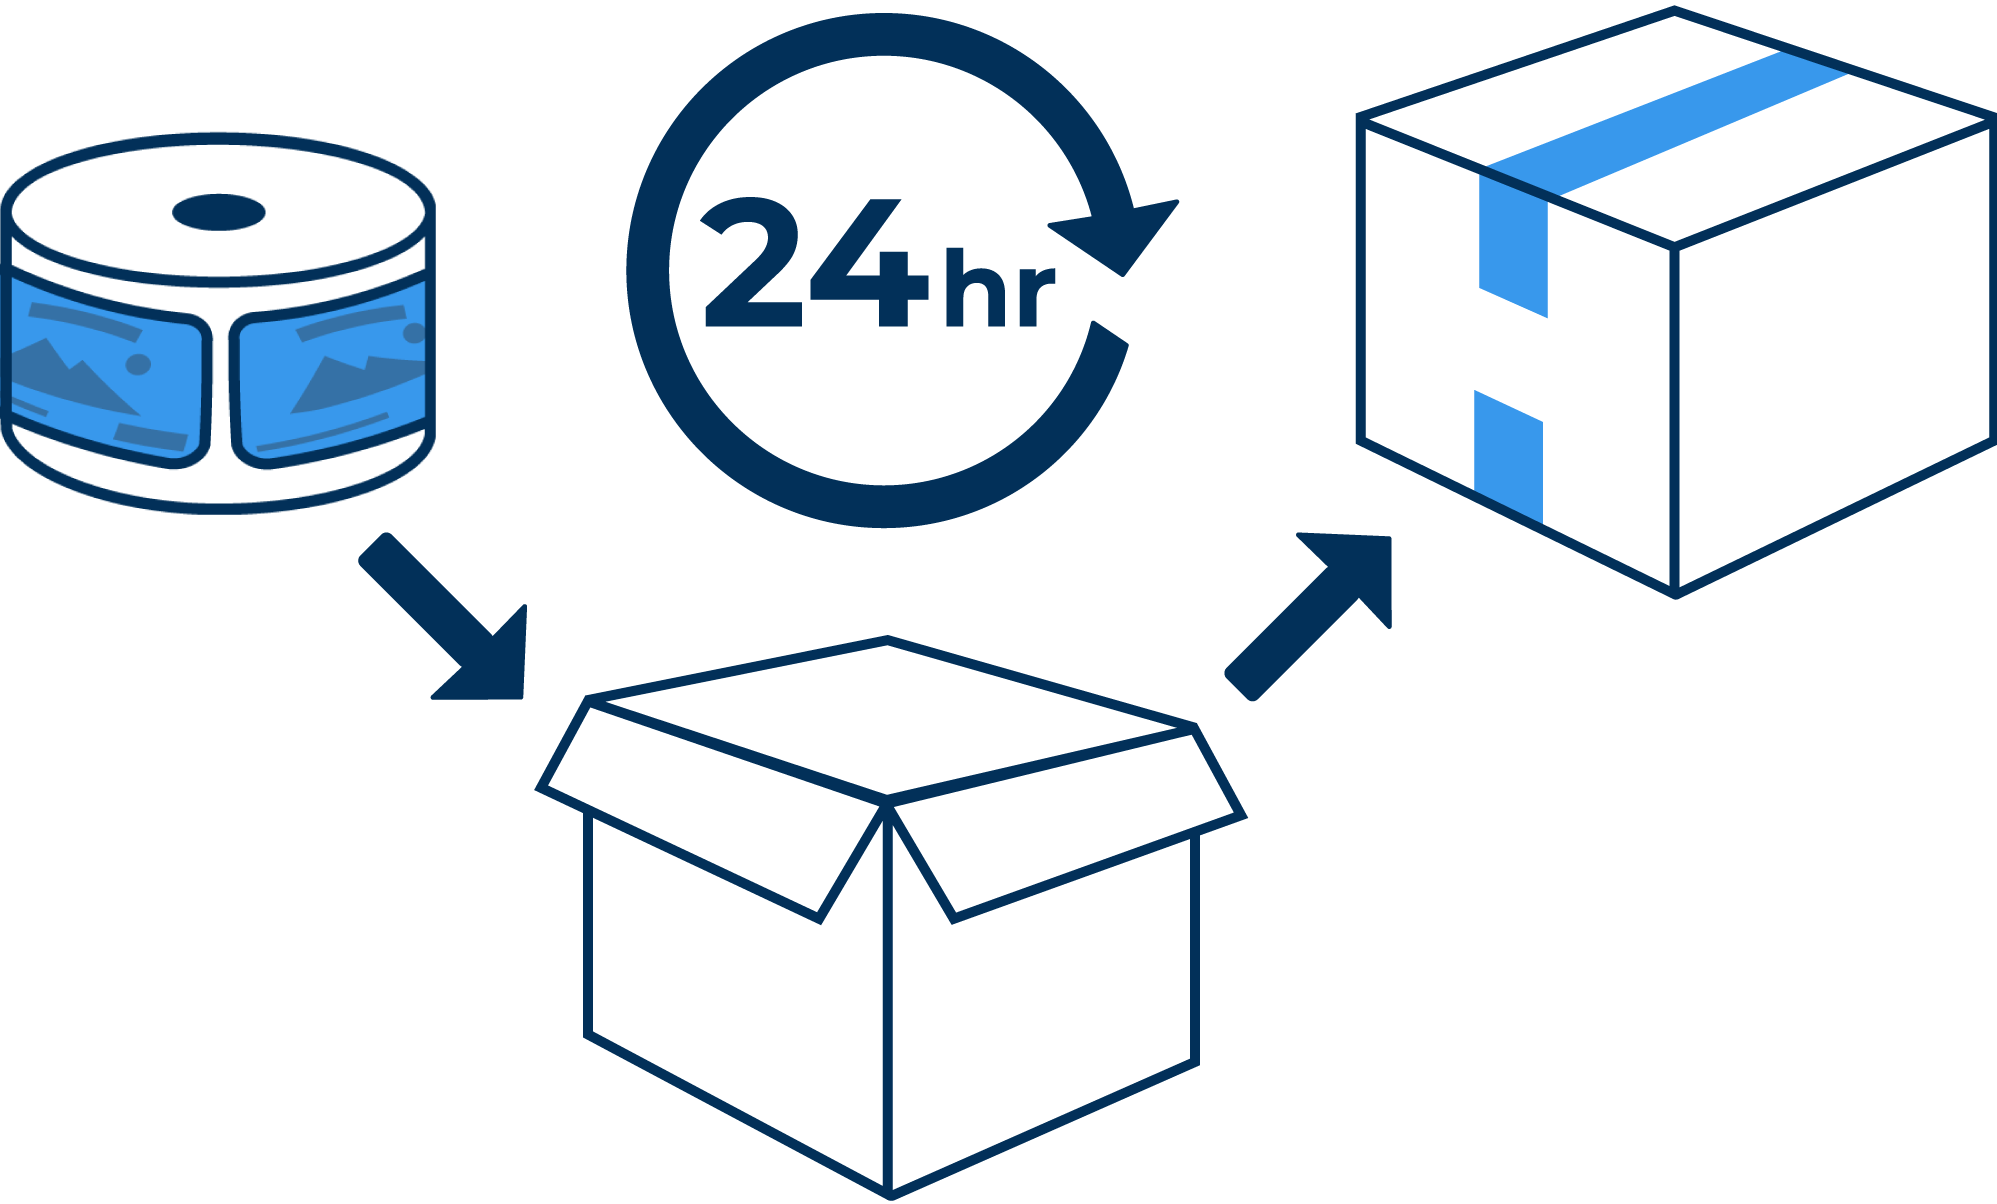 Print, package, and ship your labels in 24hrs